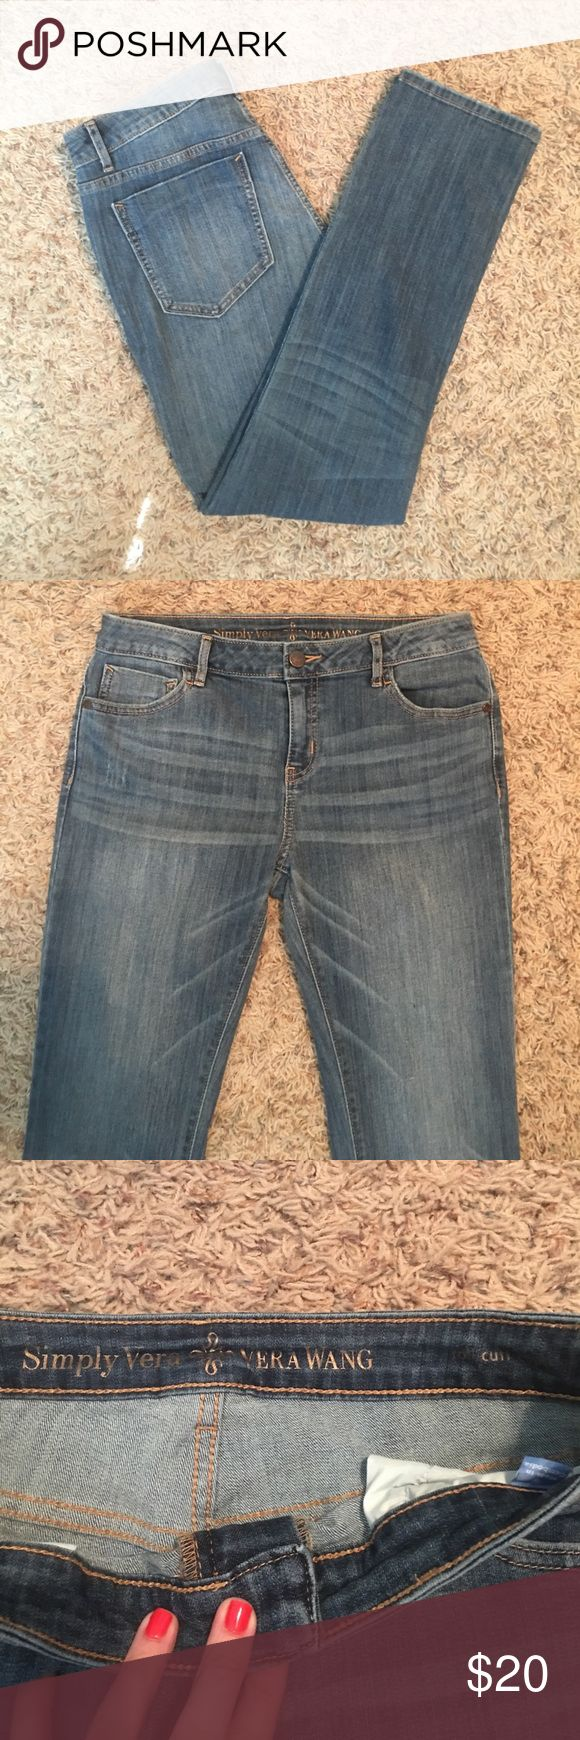 Simply Vera Wang women's jeans! Size 8, roll cuff Capri style in great condition! Can be cuffed or not! Simply Vera Vera Wang Jeans